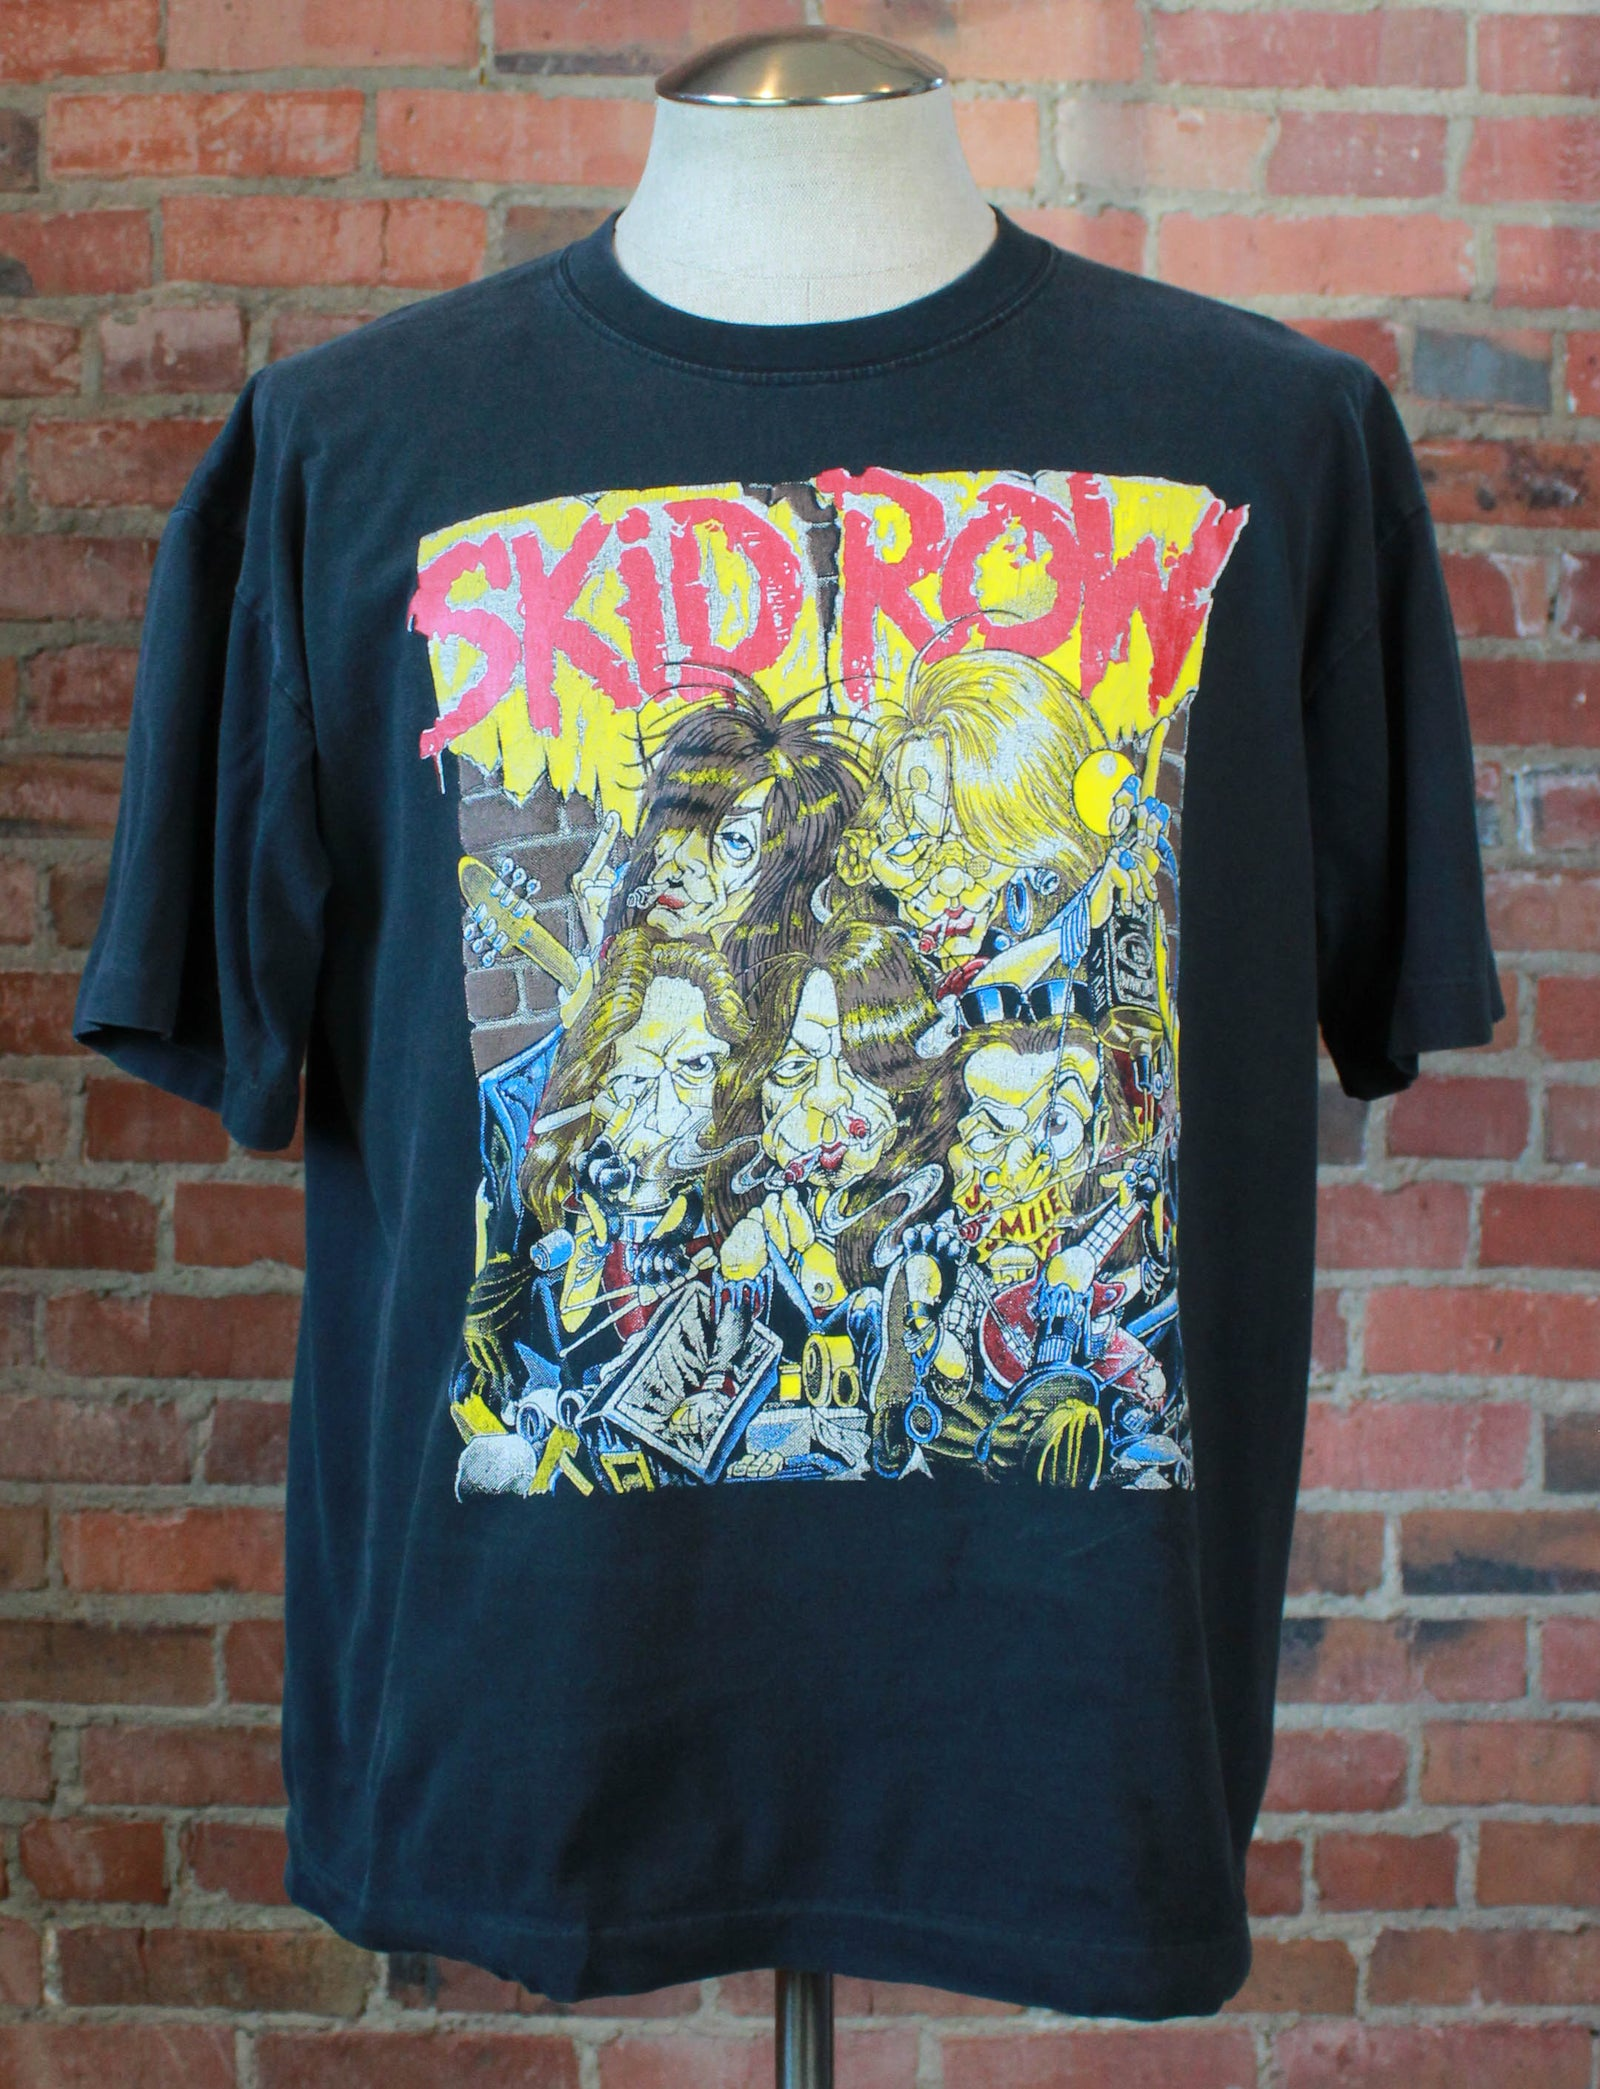 Vintage 1992 Skid Row Concert T Shirt B-Sides Ourselves Tour Black Unisex Large